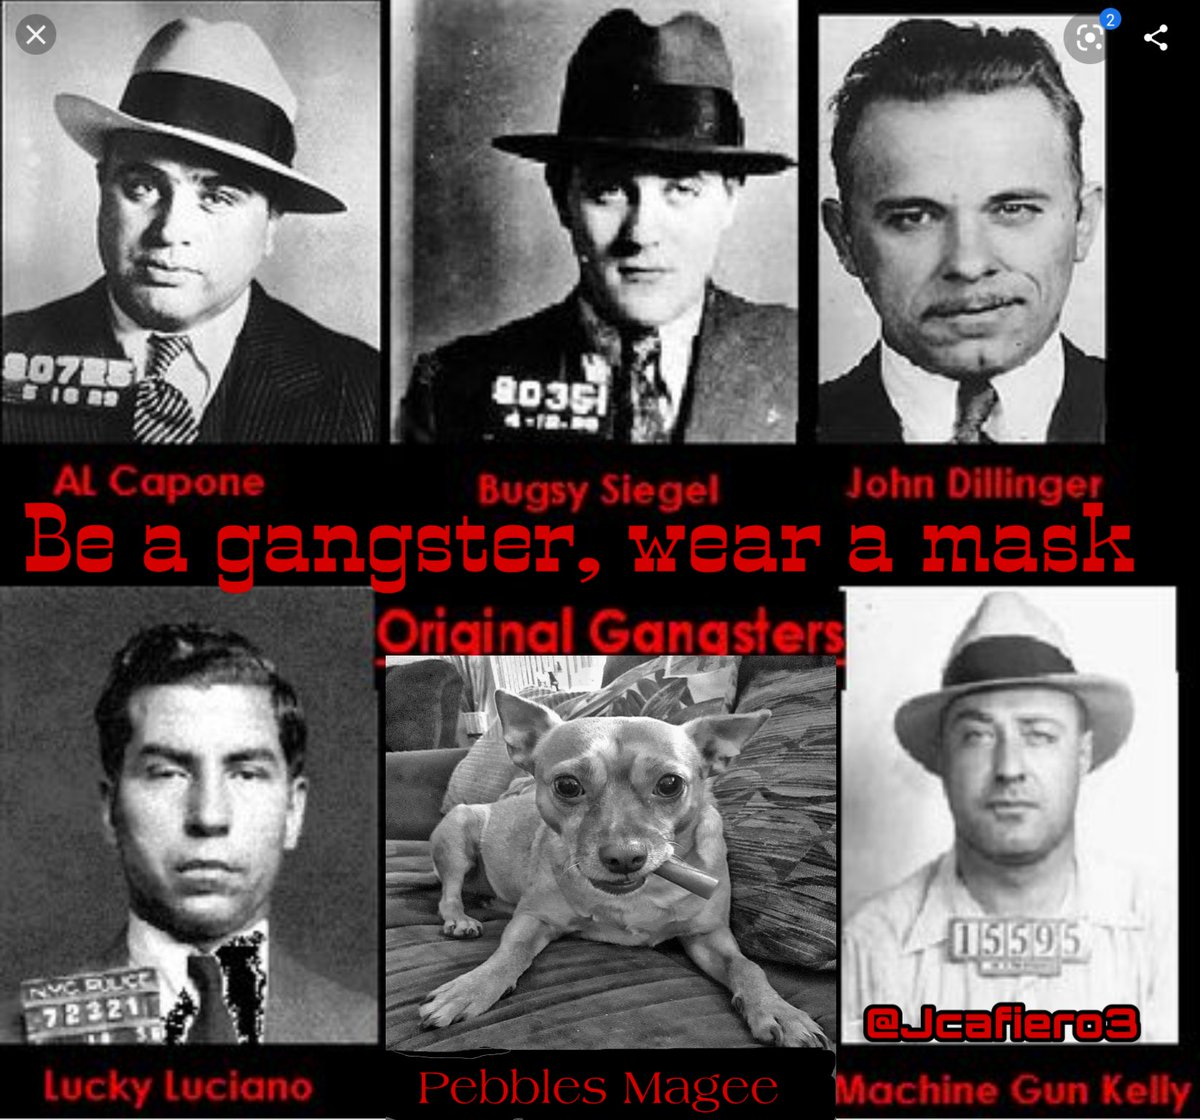 Pebbles Magee says,  be an Original Gangster,  WEAR the DAMN MASK.  #IStandWithFauci #TrumpVirus #resisters must unite now more than ever before  111 days till November 3rd #TrumpIsLosing #TrumpLiesAmericansDie #VoteBlueToSaveAmerica2020 #VoteTrumpOut